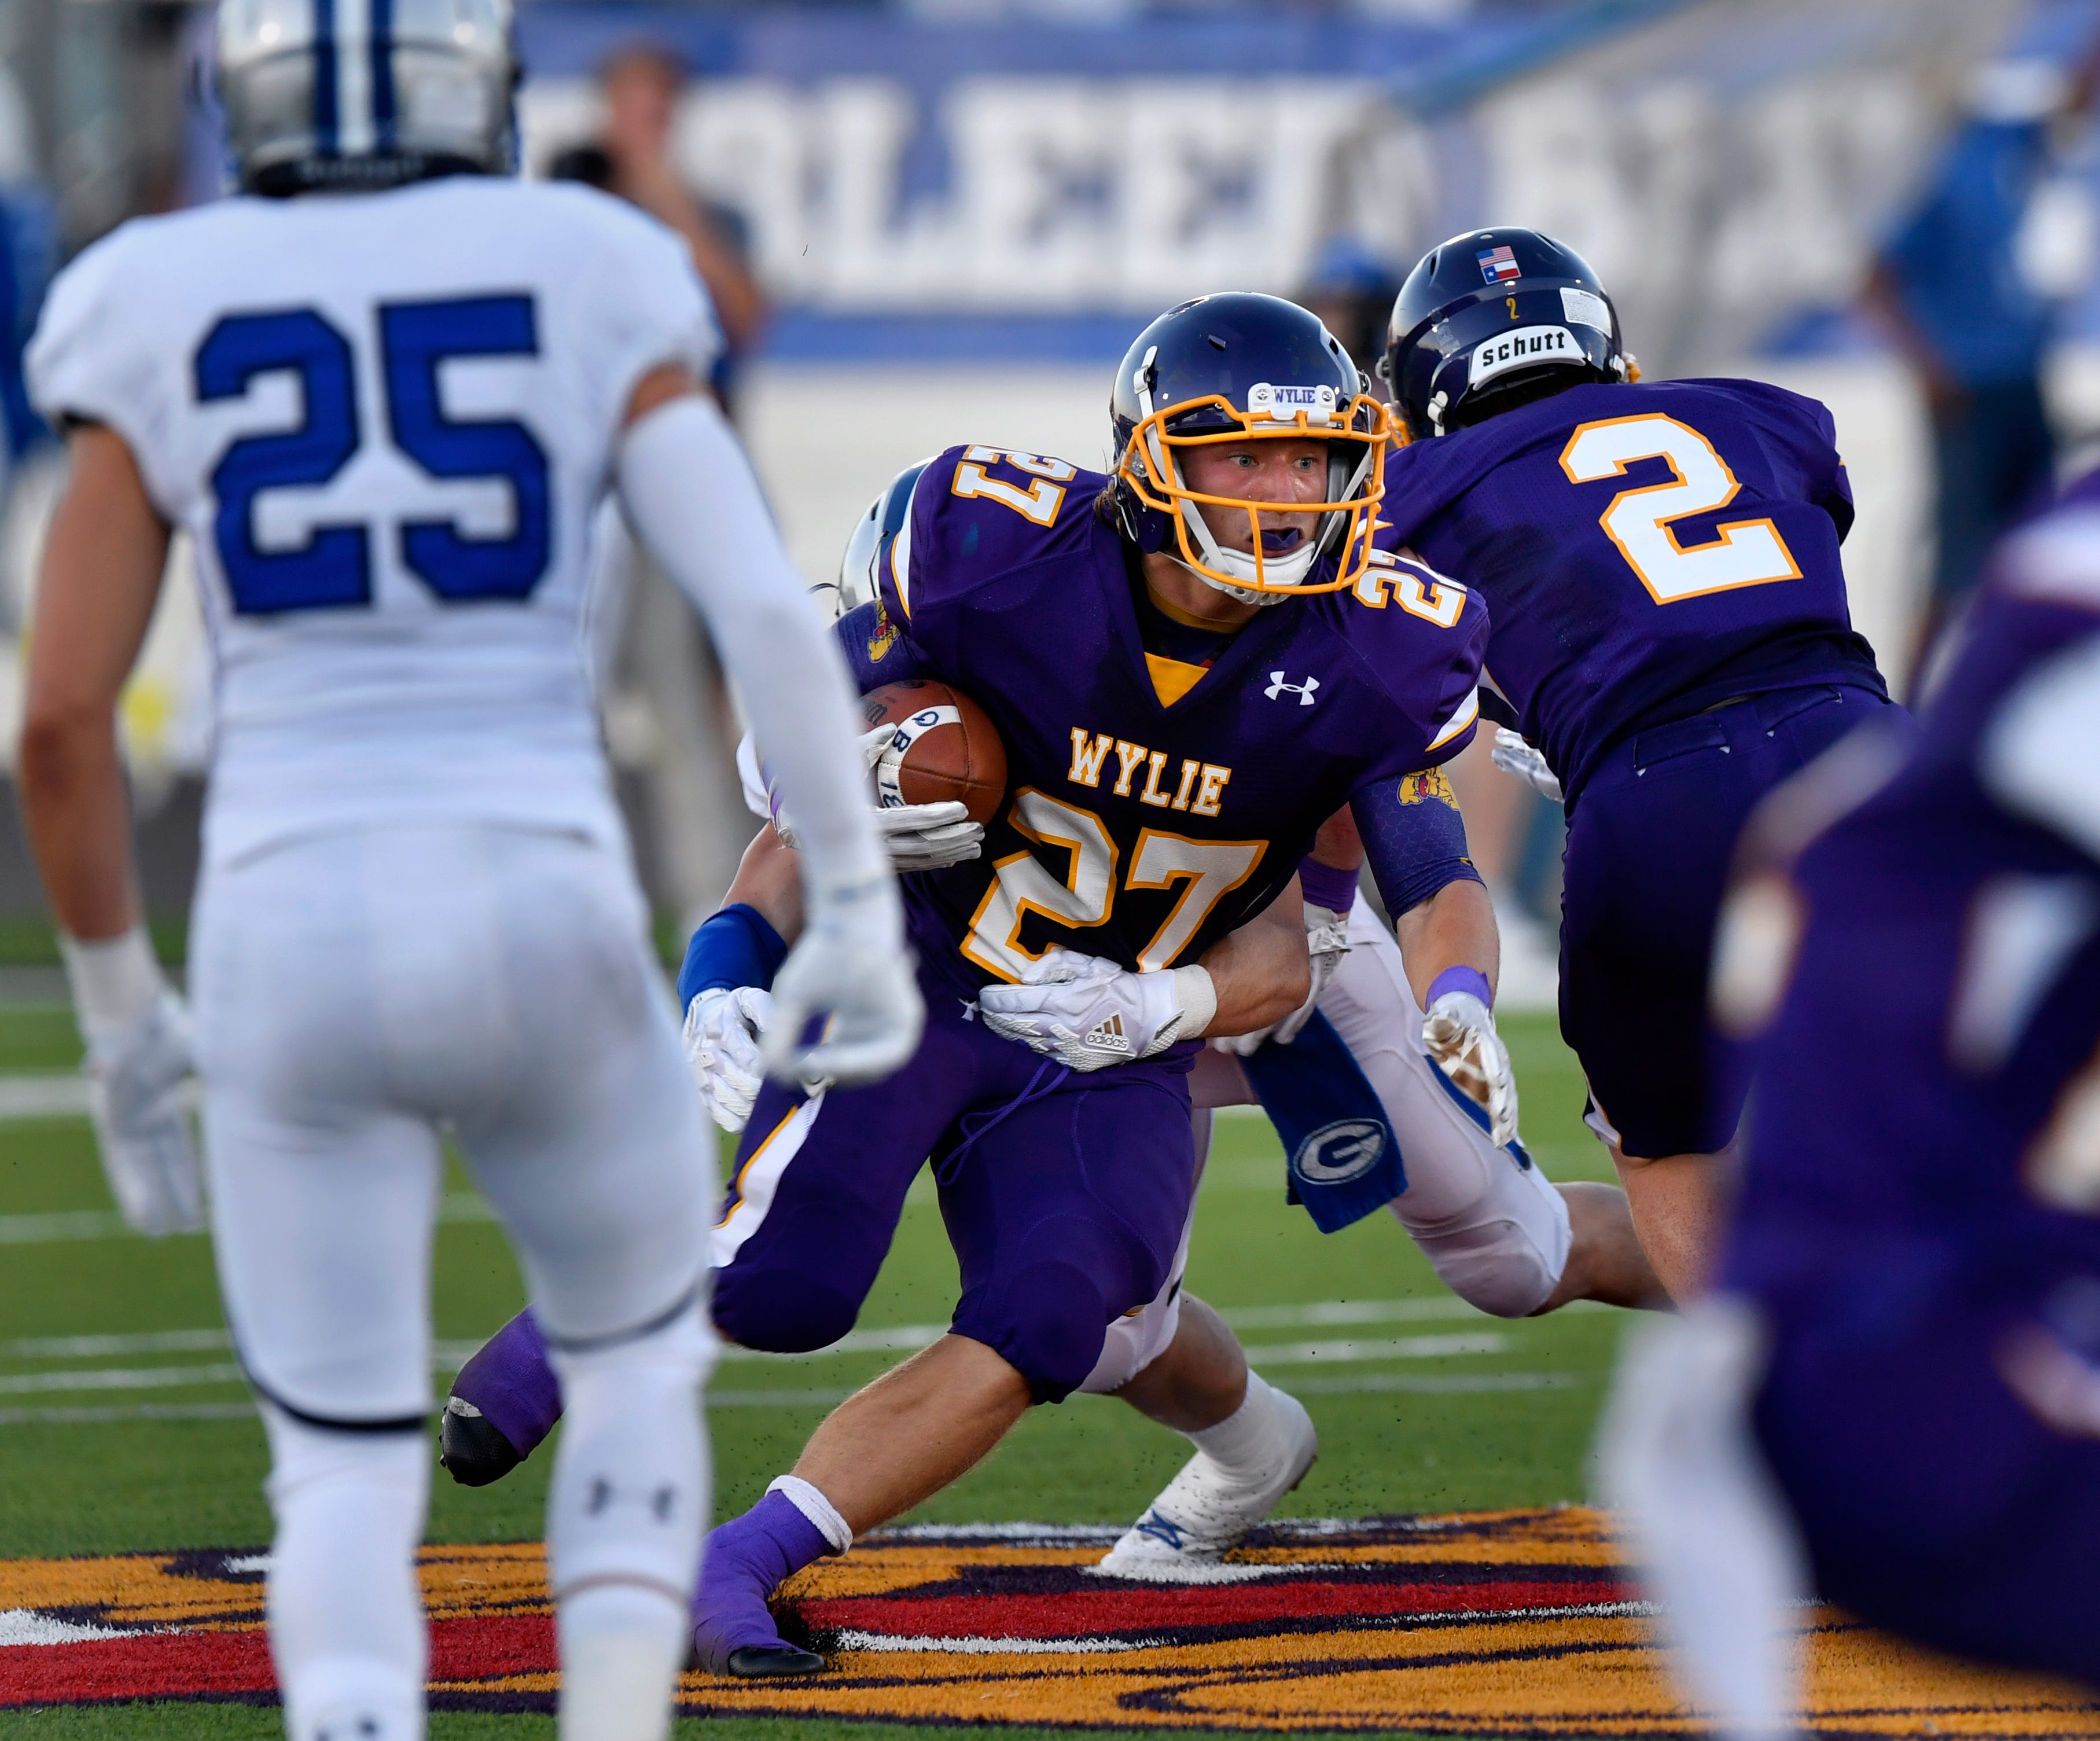 Wylie's Bailey Hicks runs up the middle during Friday's game against Georgetown. The Bulldogs lost the season opener 31-7.